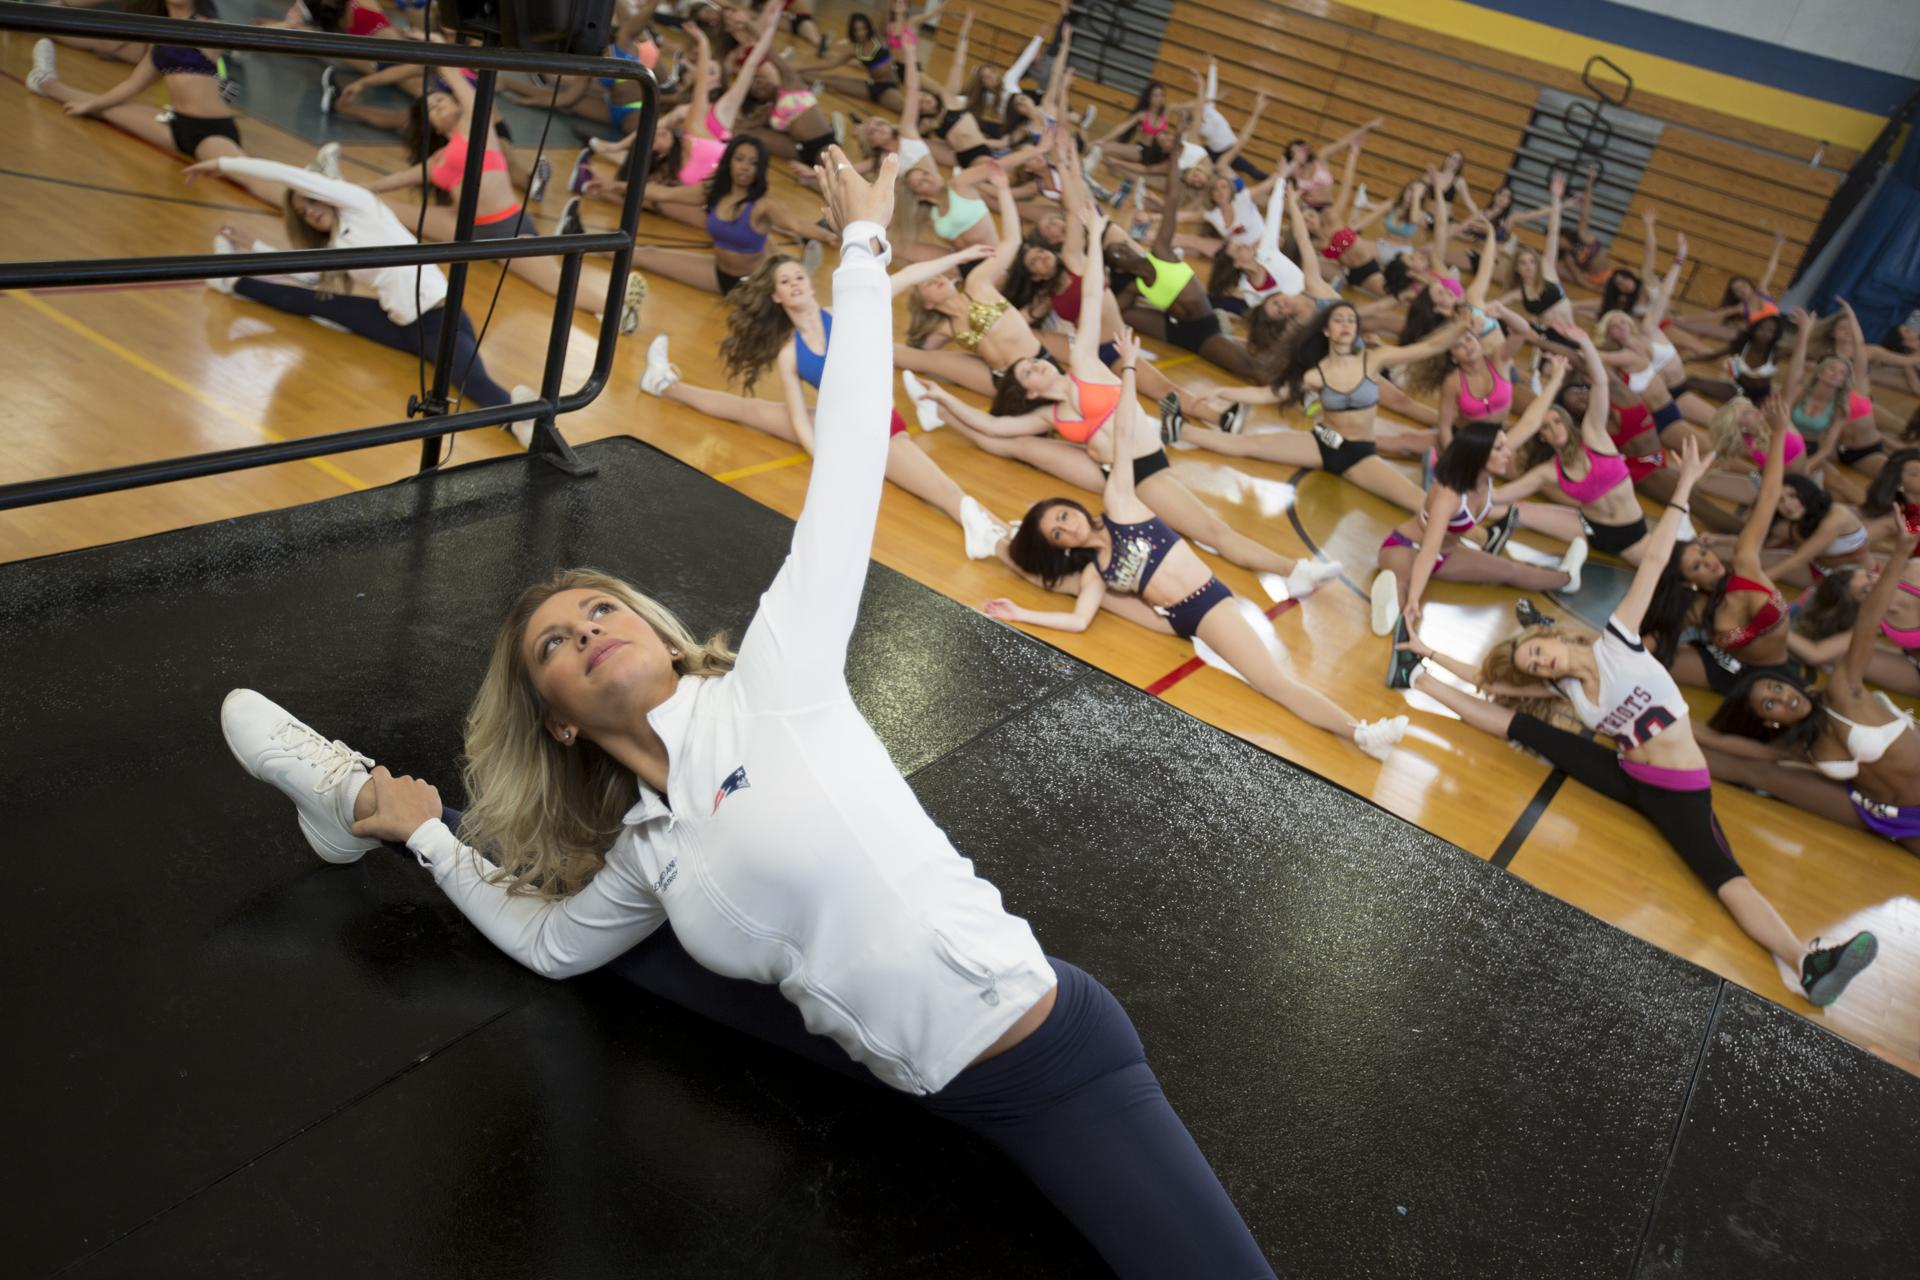 Patriots Cheerleaders captain Alex Stavropoulos of Needham led the prospective cheerleaders in stretches.